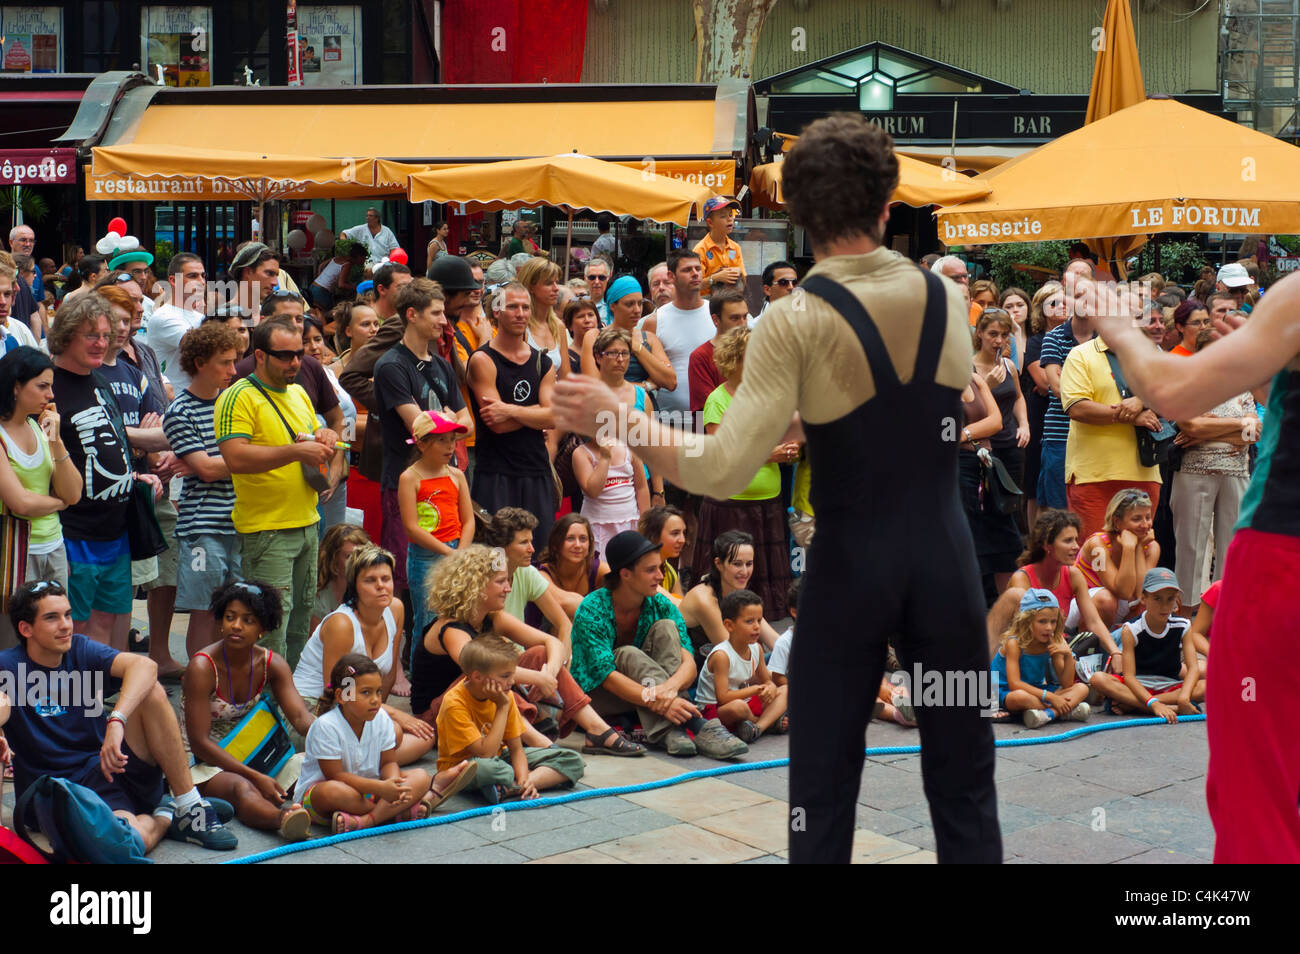 Avignon, France, Annual Theater Festival, Large Crowd Watching Street performer on Town Square - Stock Image